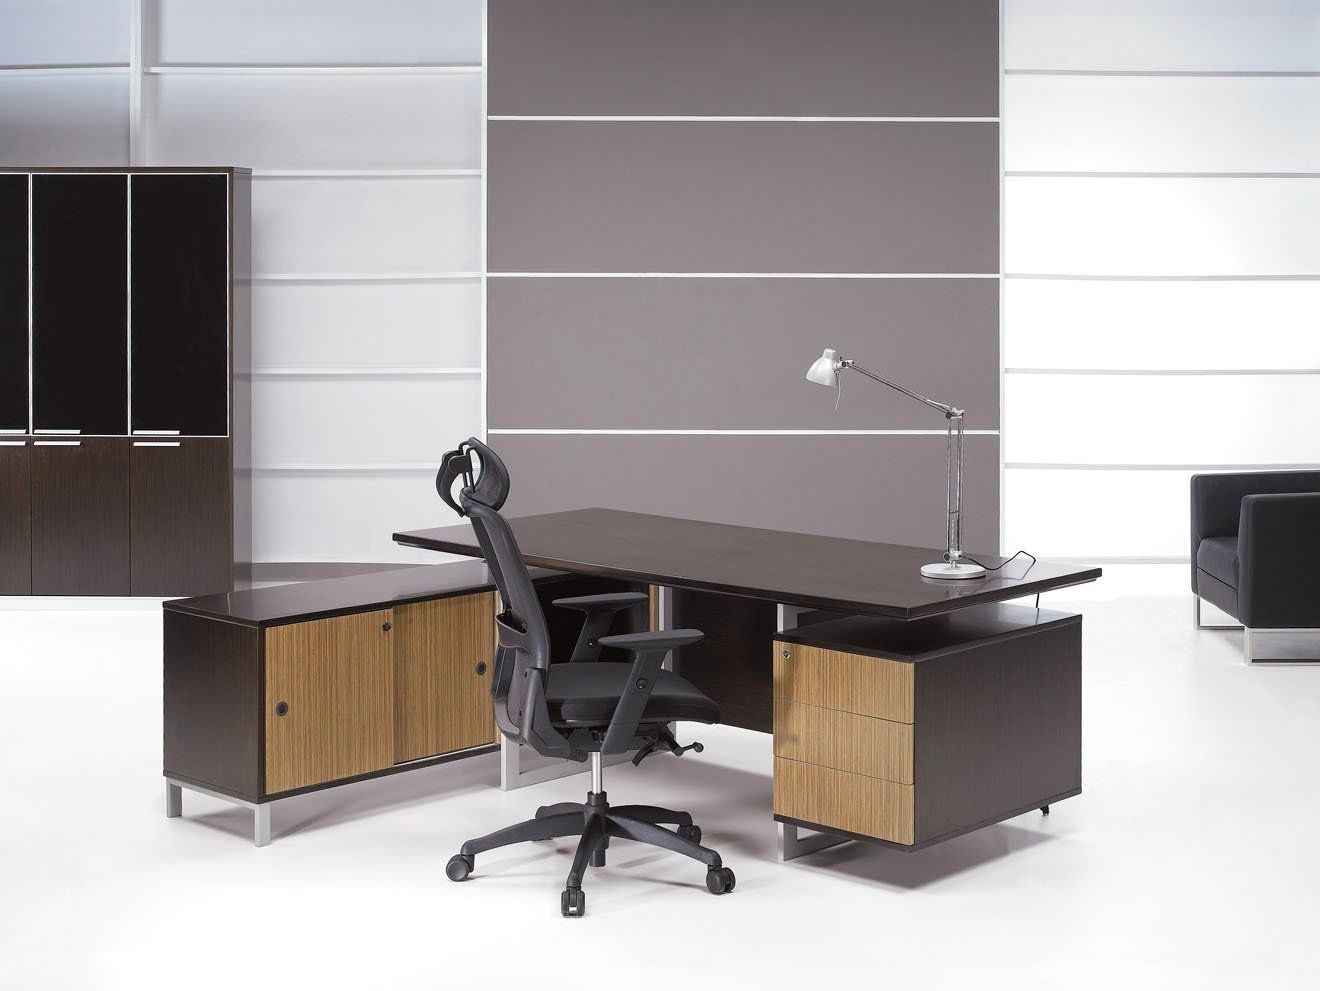 elegant modern home office furniture. Modern Office L Desk Furniture With Storage Adding Executive Chair And Light Lamp Table Also Elegant Home O